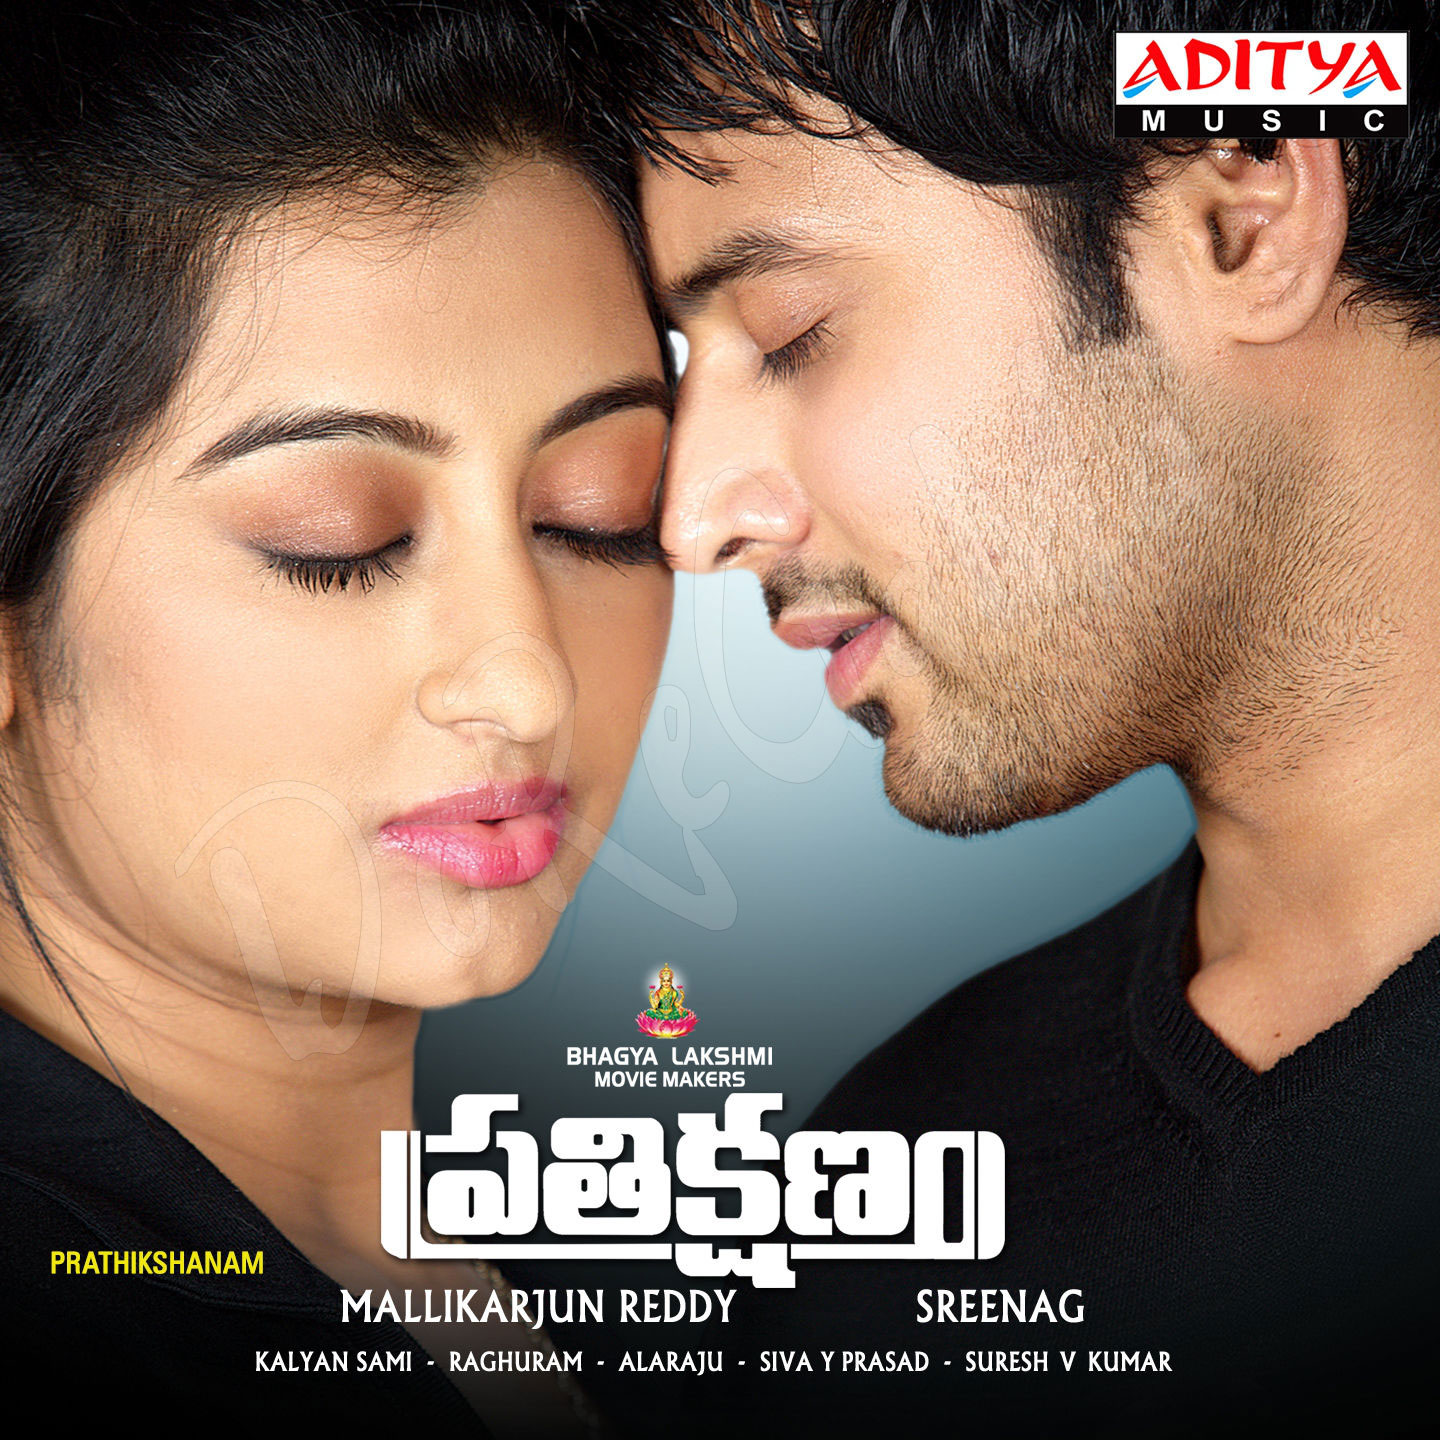 Prathikshanam-2016-Original-CD-Front-Cover-Poster-Wallpaper-HD